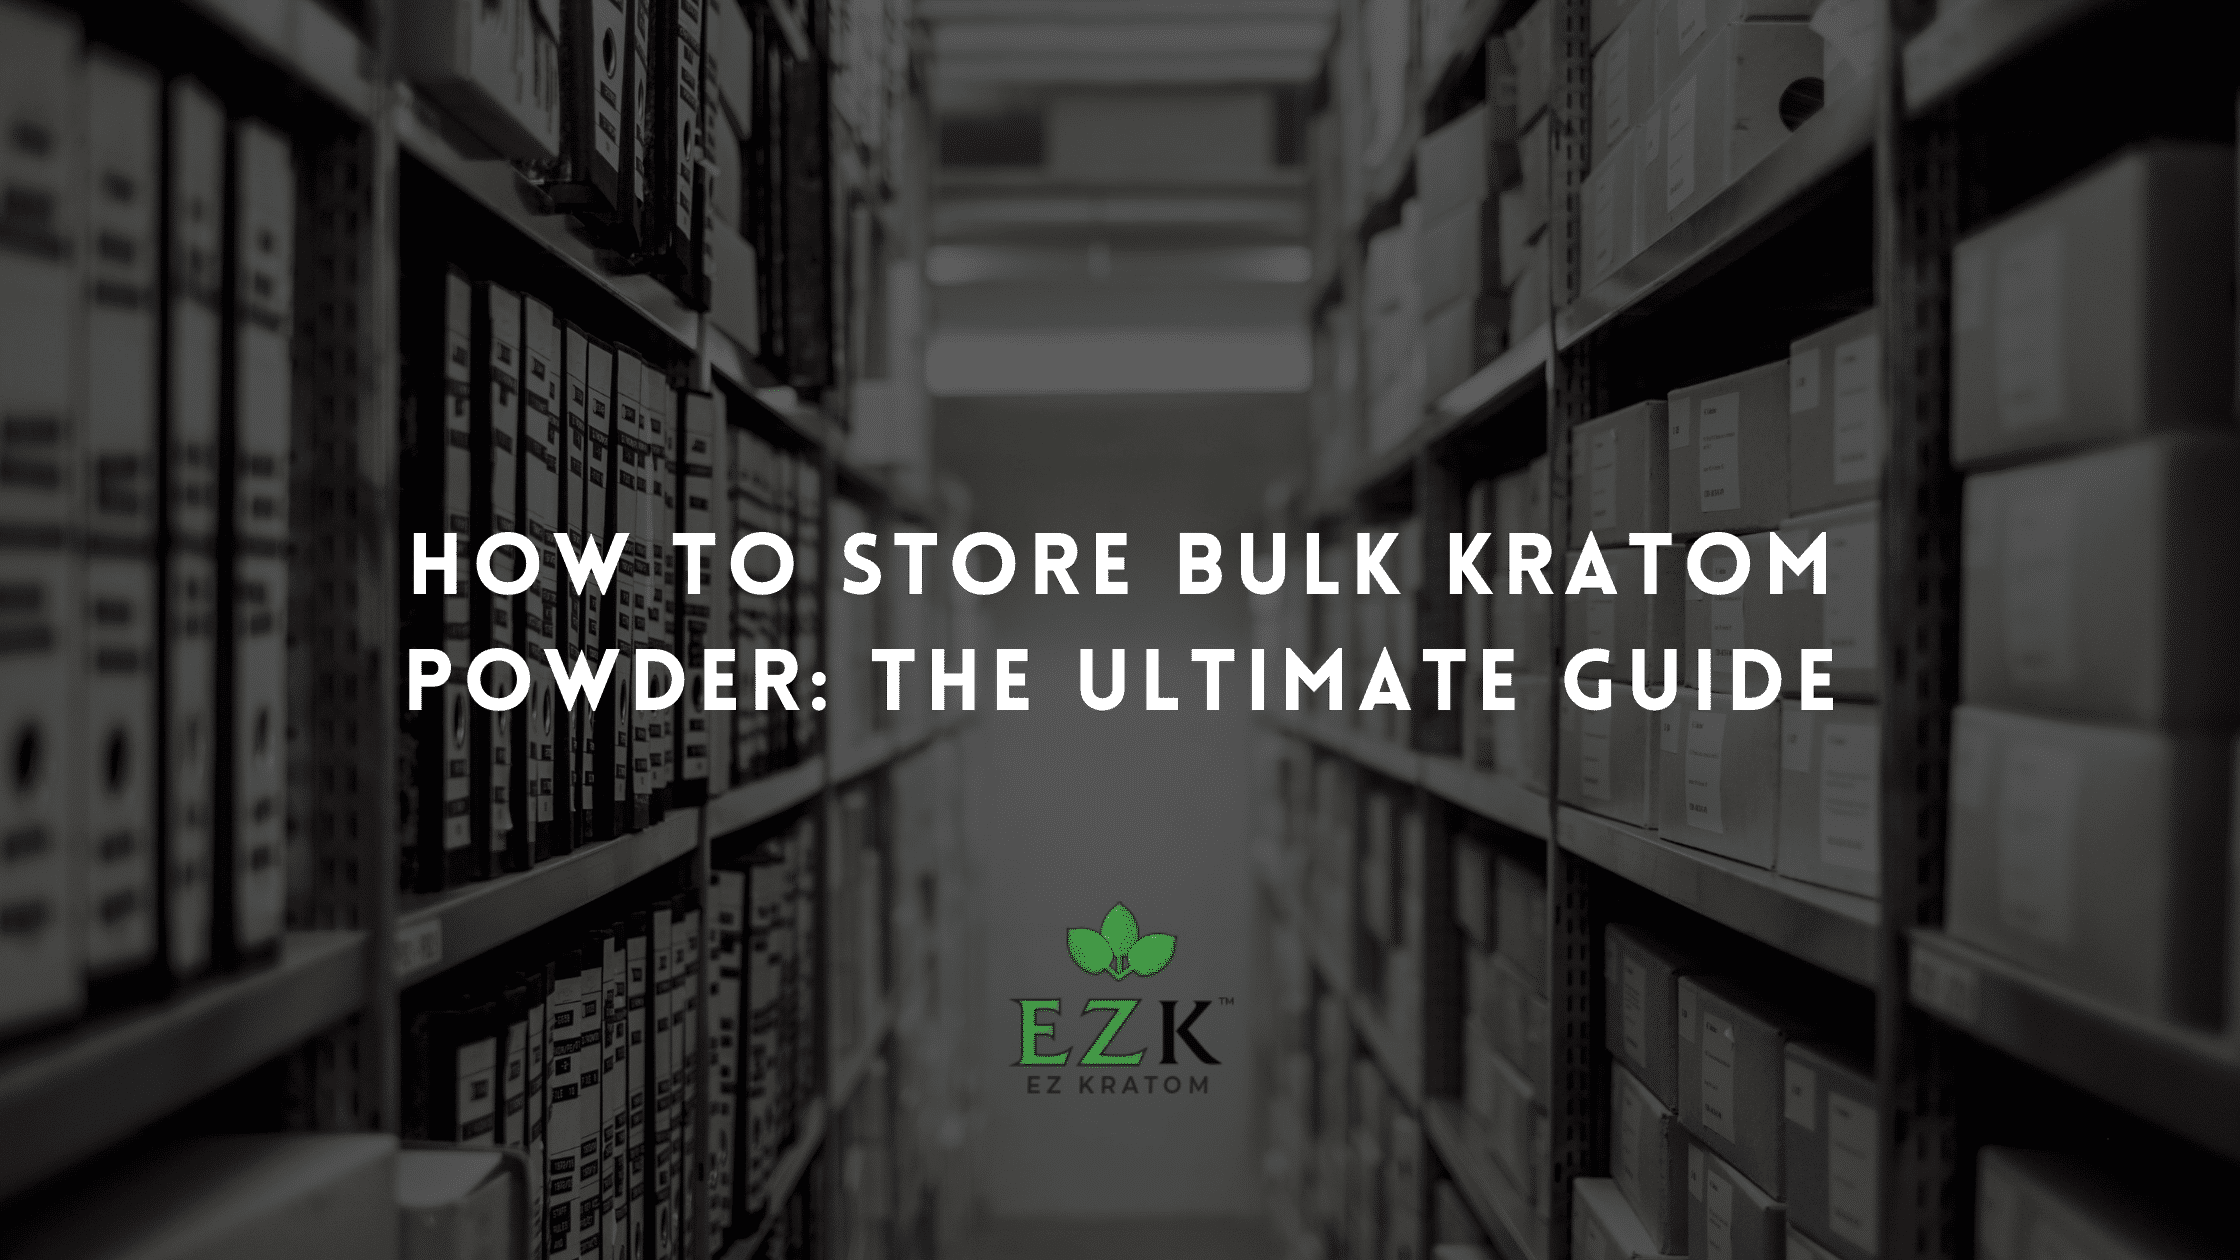 How to Store Bulk Kratom Powder: The Ultimate Guide